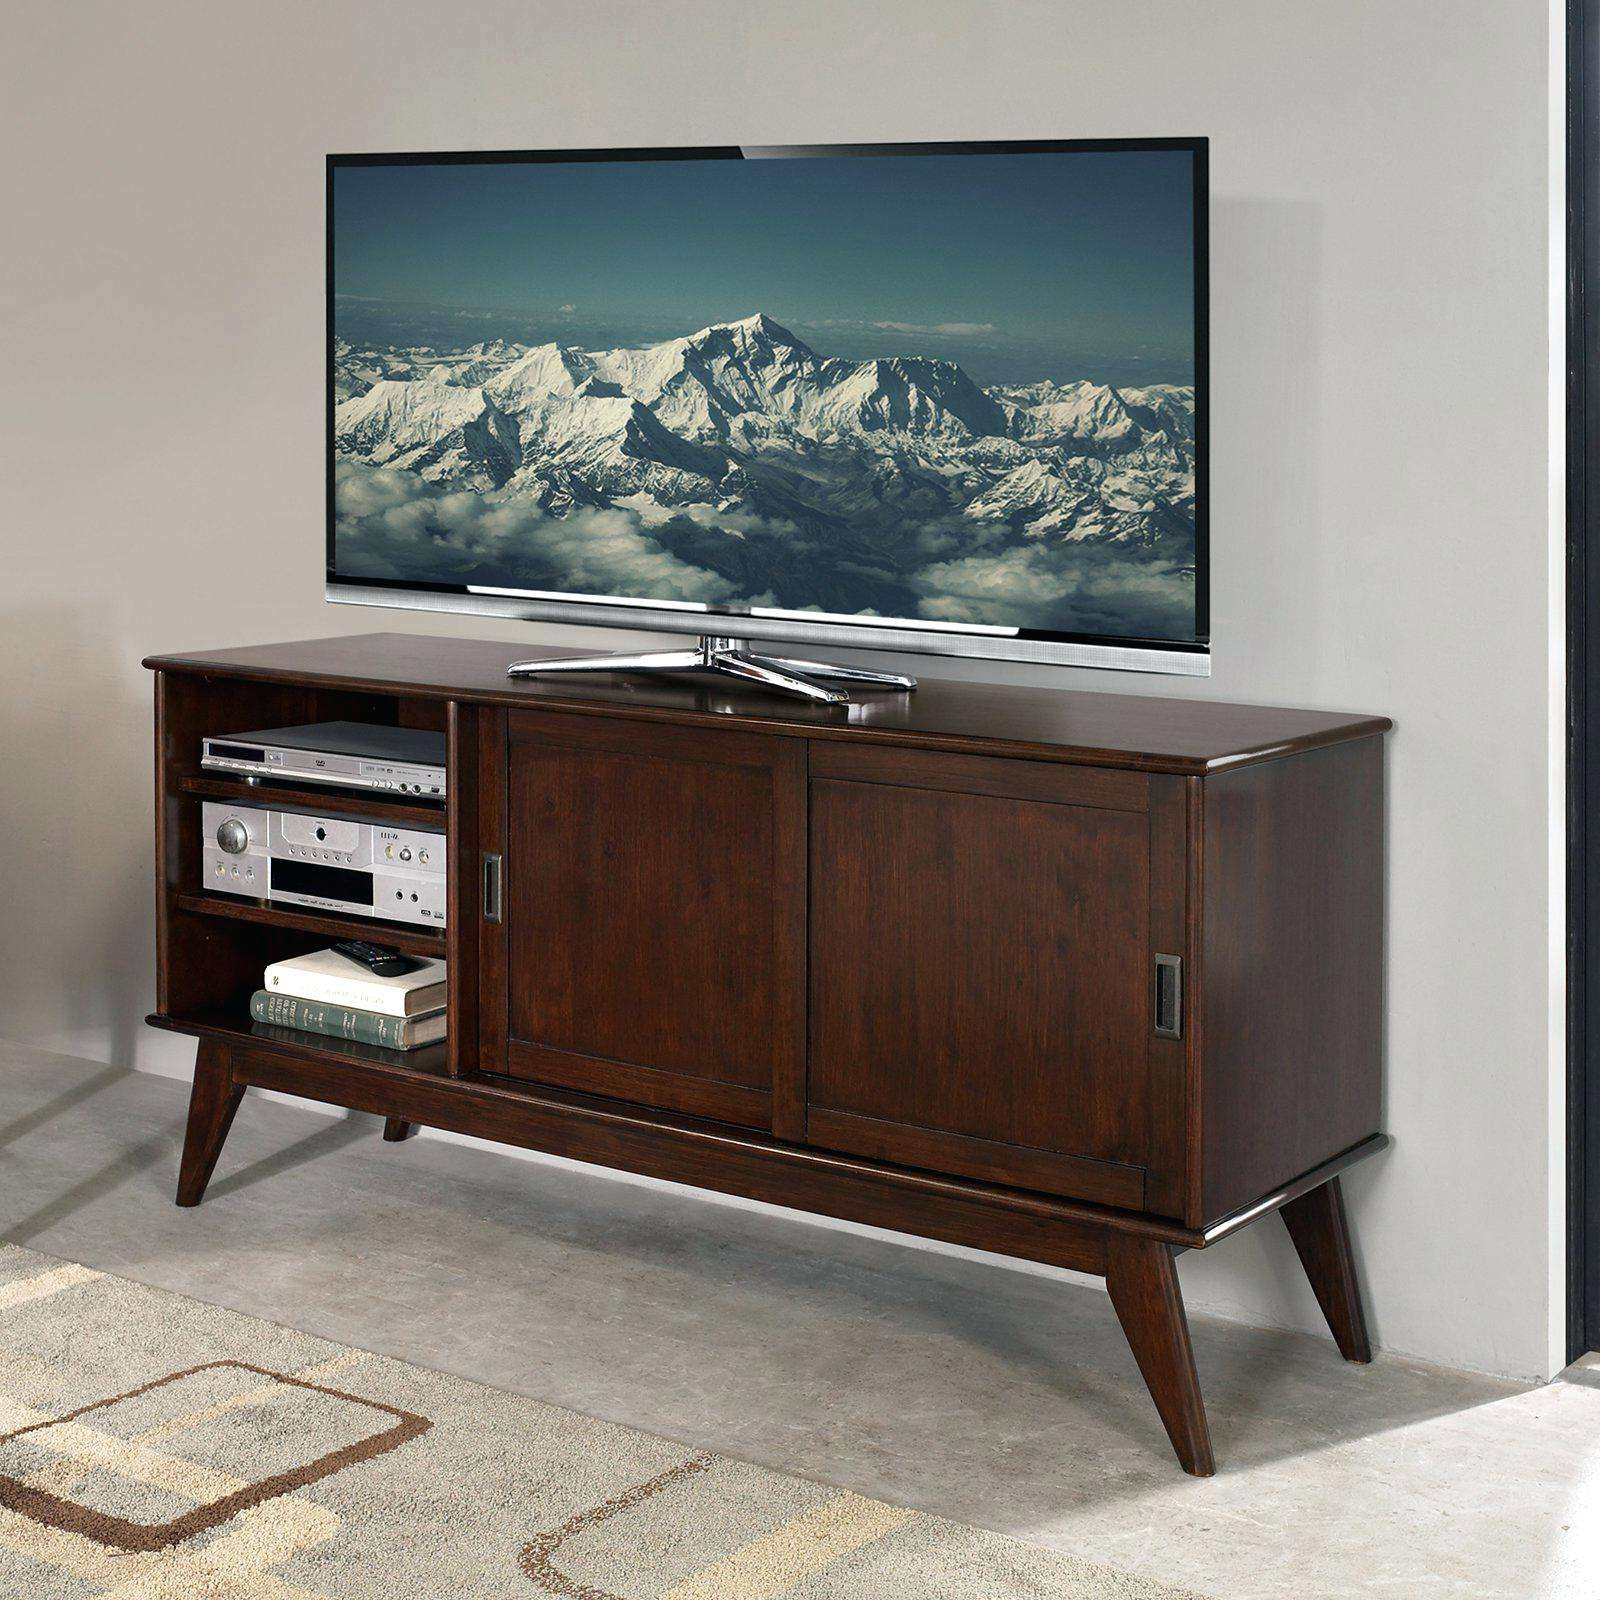 Tv Stand: Hokku Design Tv Stand (View 5 of 15)